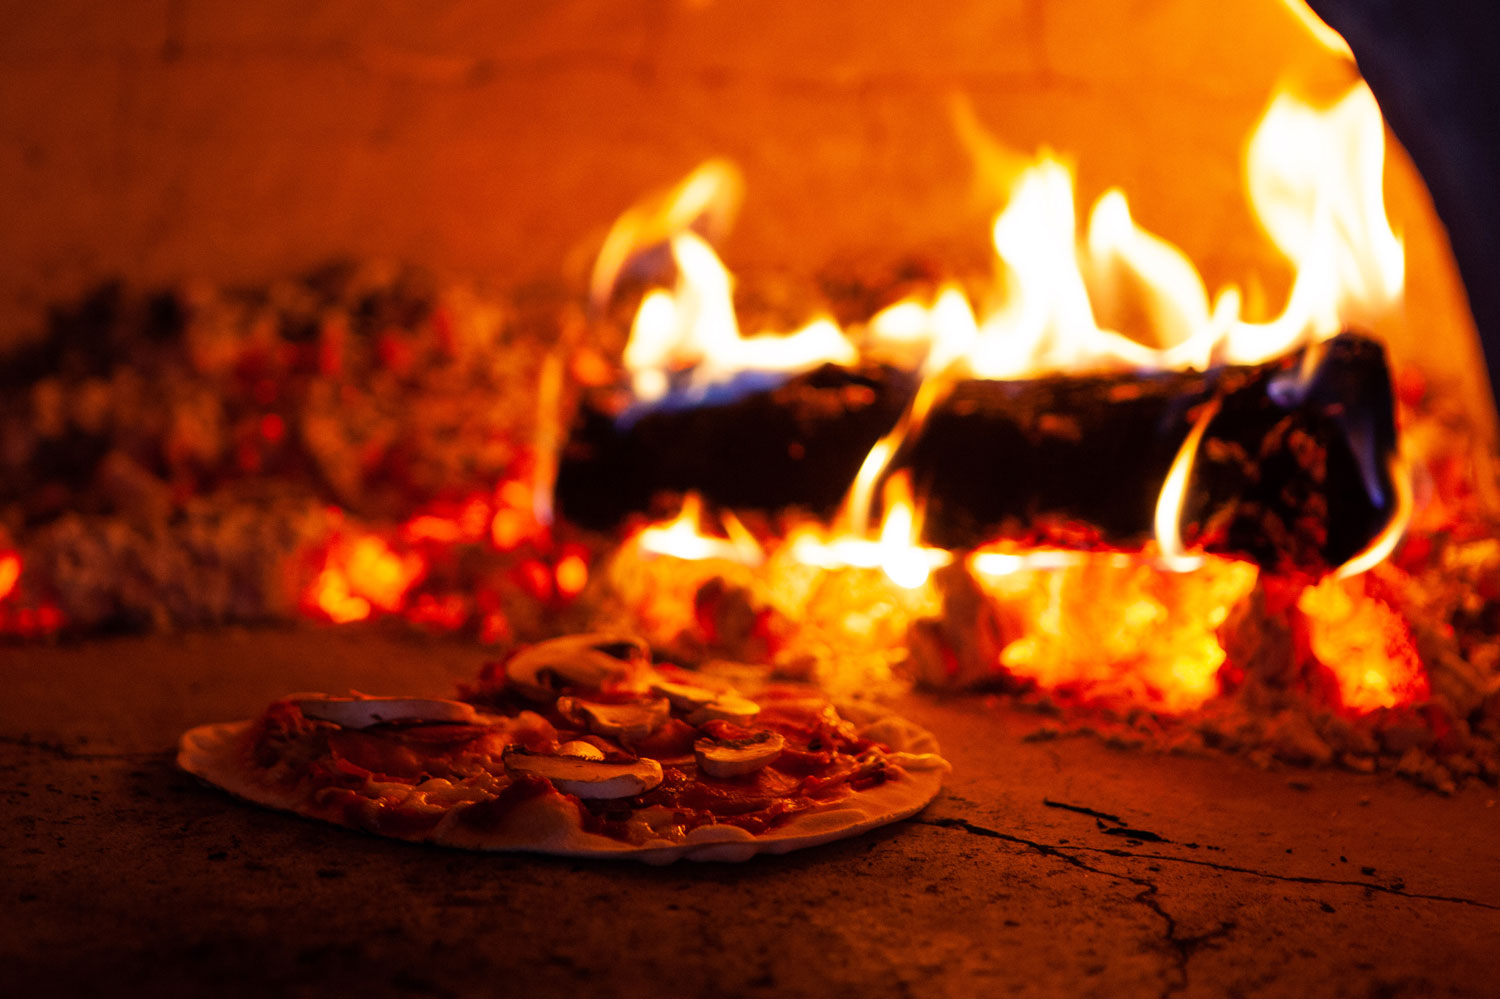 16:00 - 21:00Outdoor Pizzeria is Open - The outdoor pizza oven is hot, hot, hot, and the pizzeria open for business.